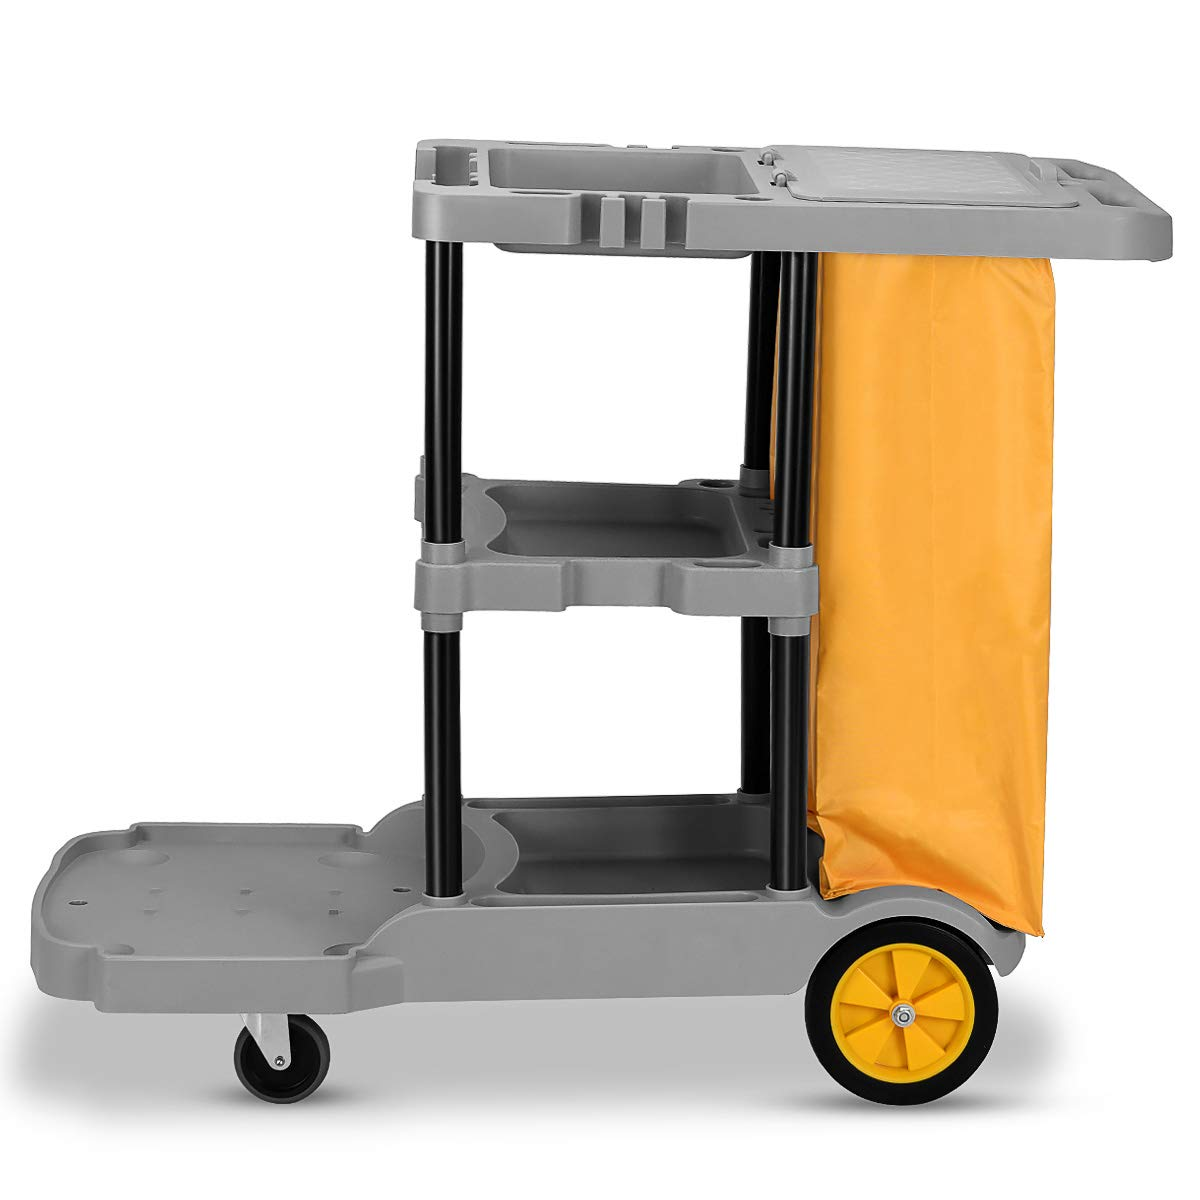 Amazon.com : Goplus Commercial Janitorial Cart Heavy Duty Cleaning Utility  Cart Service Cart 3 Shelf Housekeeping Rolling Janitor Cart with 25 Gallon  Vinyl ...